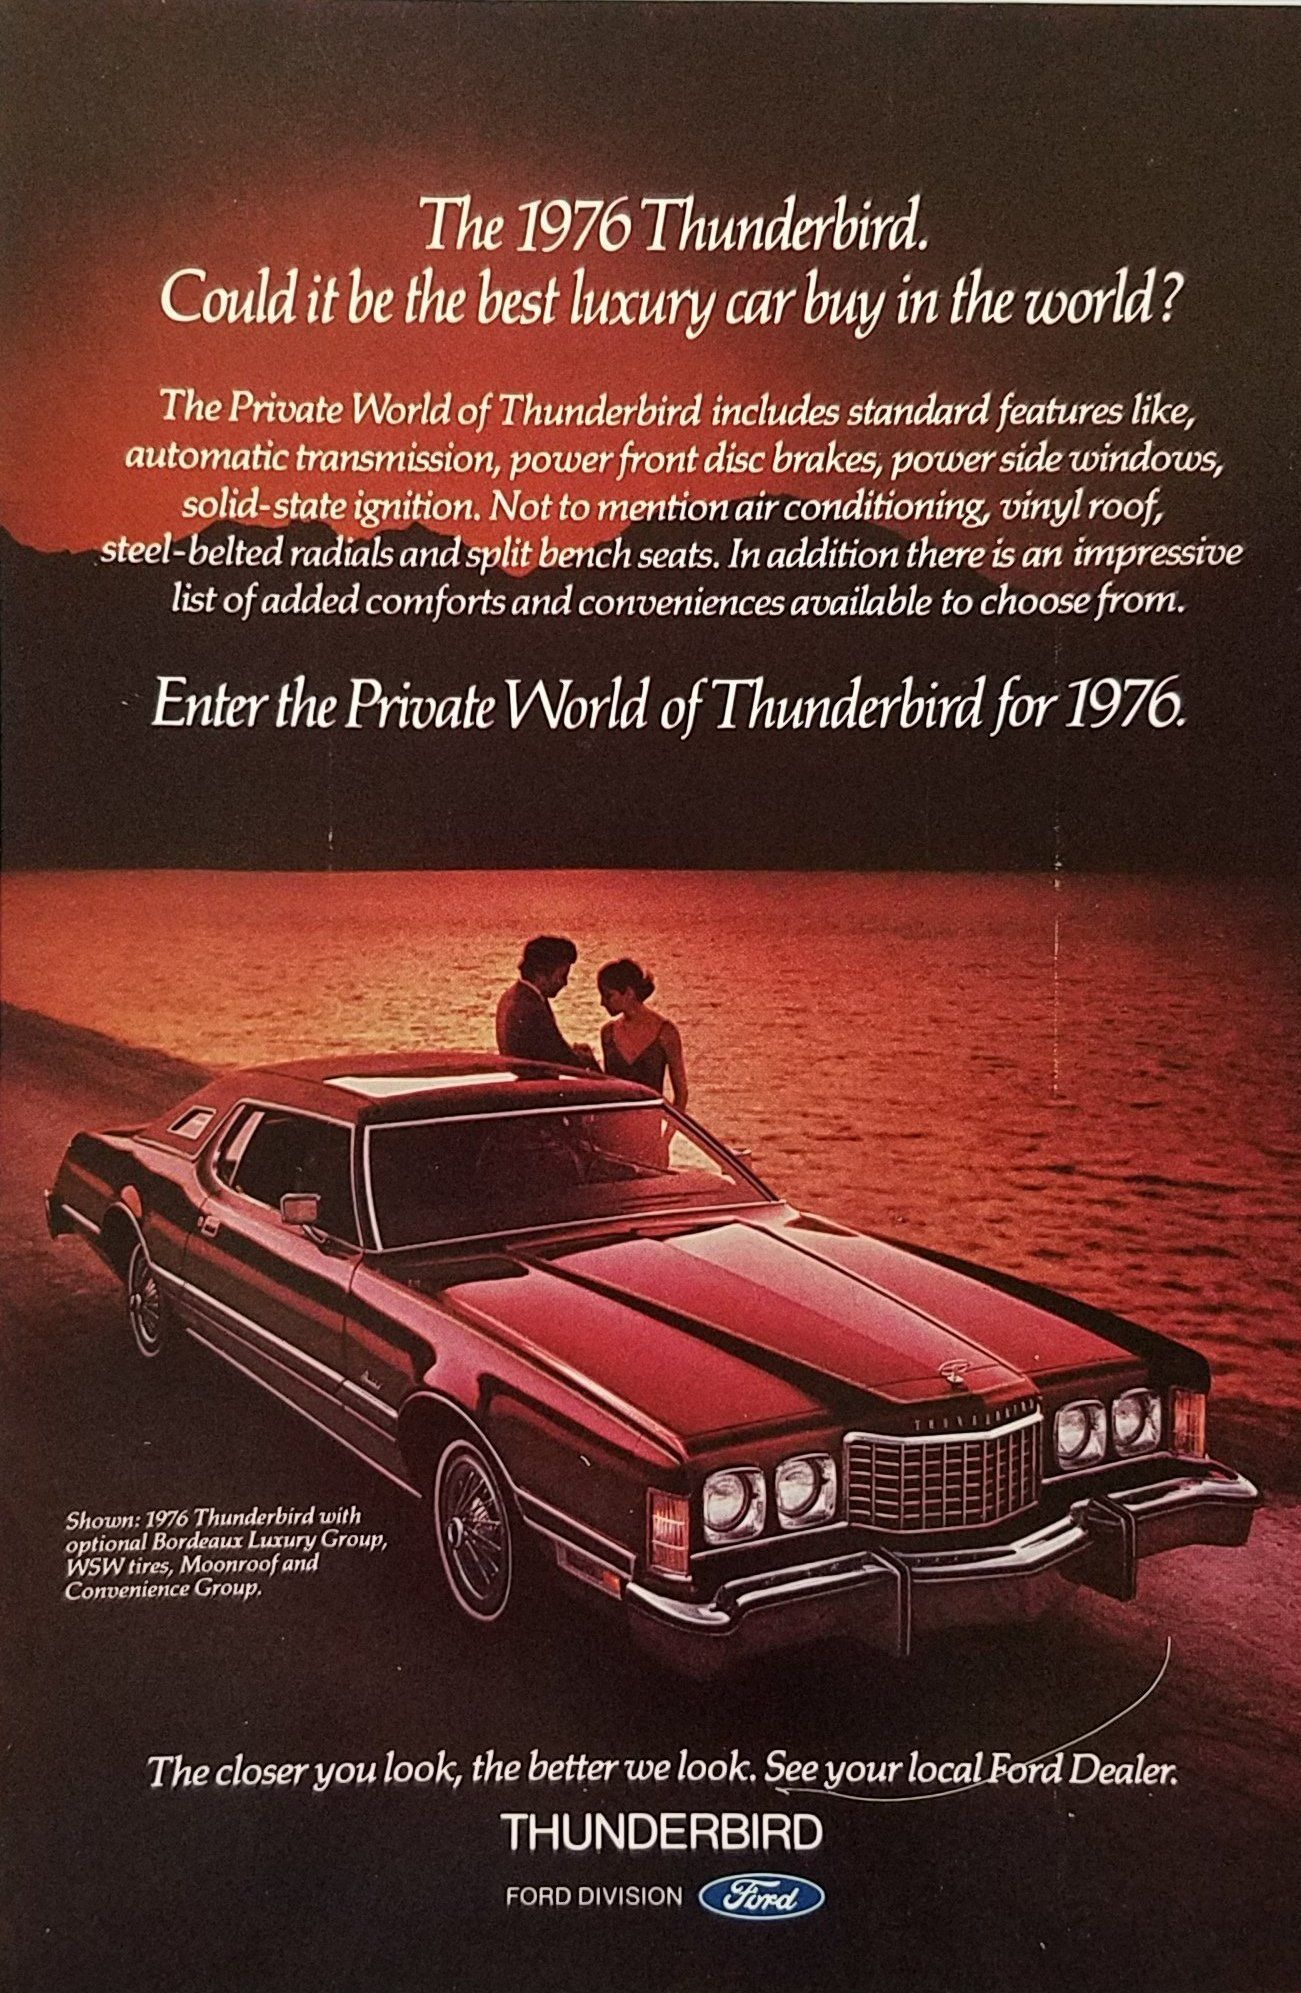 1977 Ford Thunderbird New Look New Size Original Print Ad 8.5 x 11/""